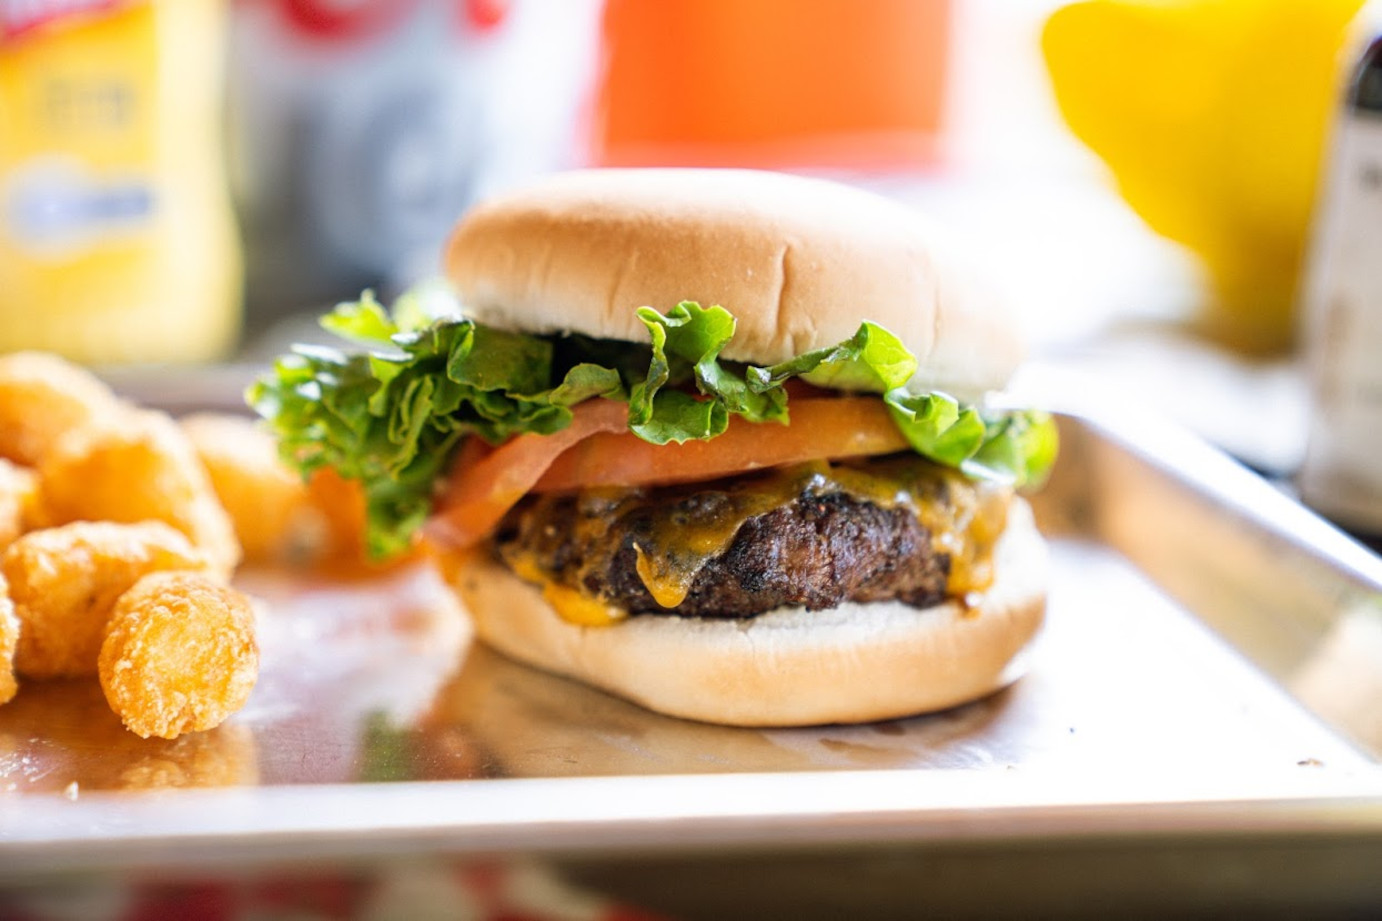 Cheeseburger with tomato and lettuce